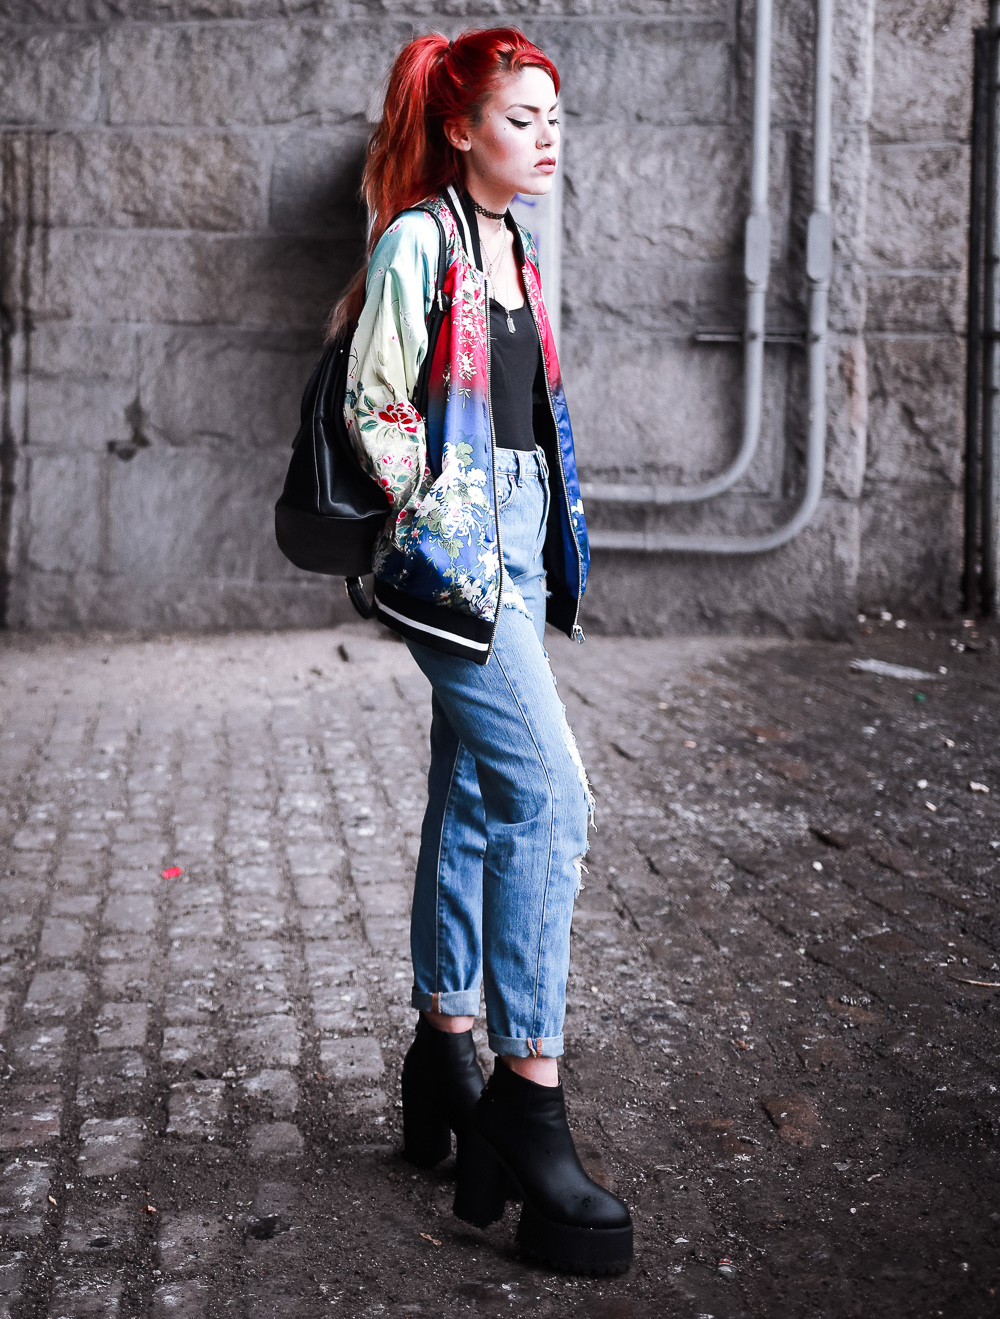 Le Happy wearing Asos bomber jacket and ripped jeans